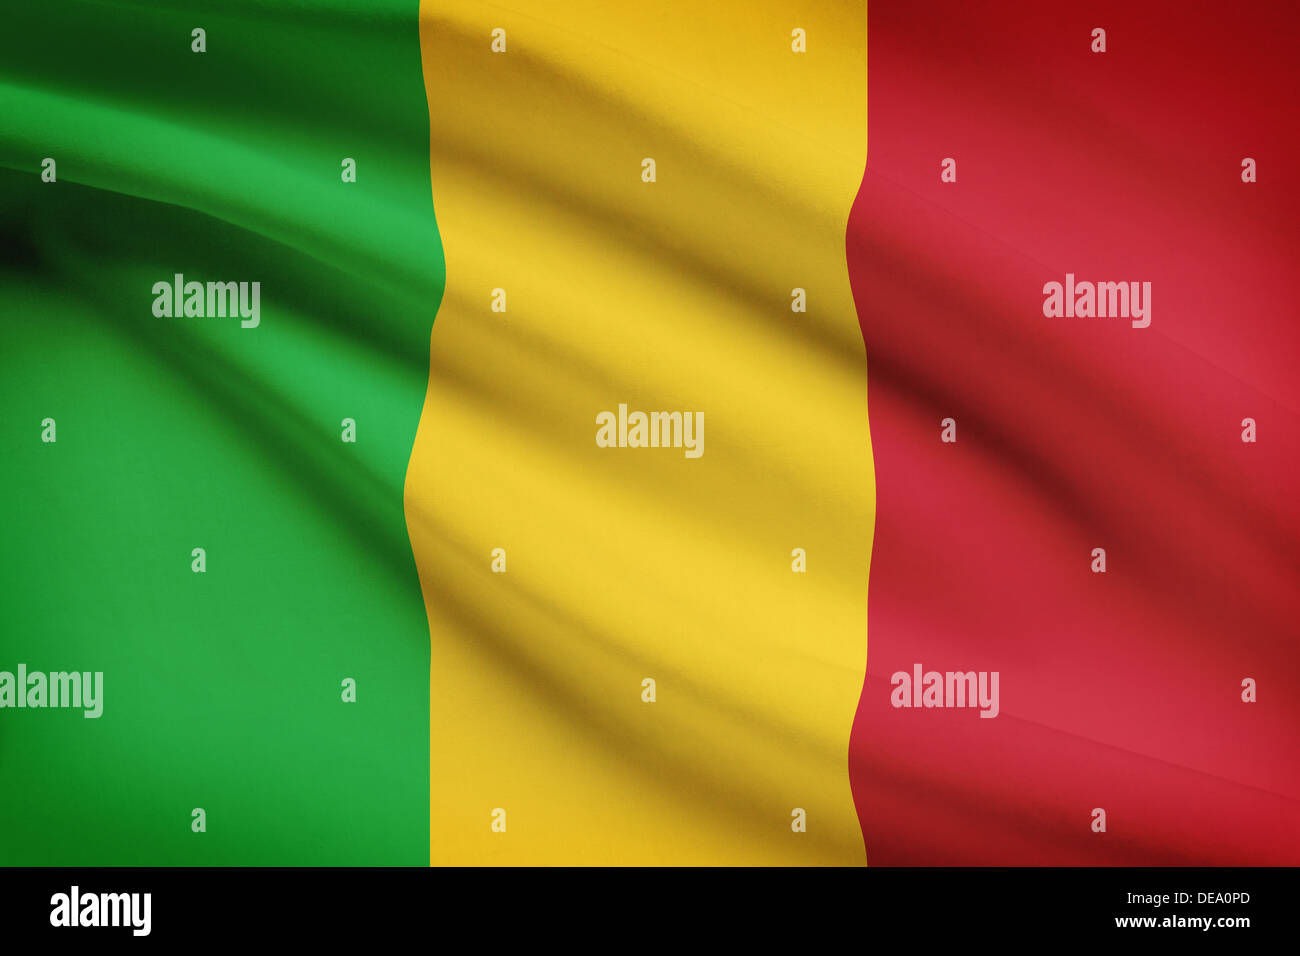 Malian flag blowing in the wind. Part of a series. - Stock Image